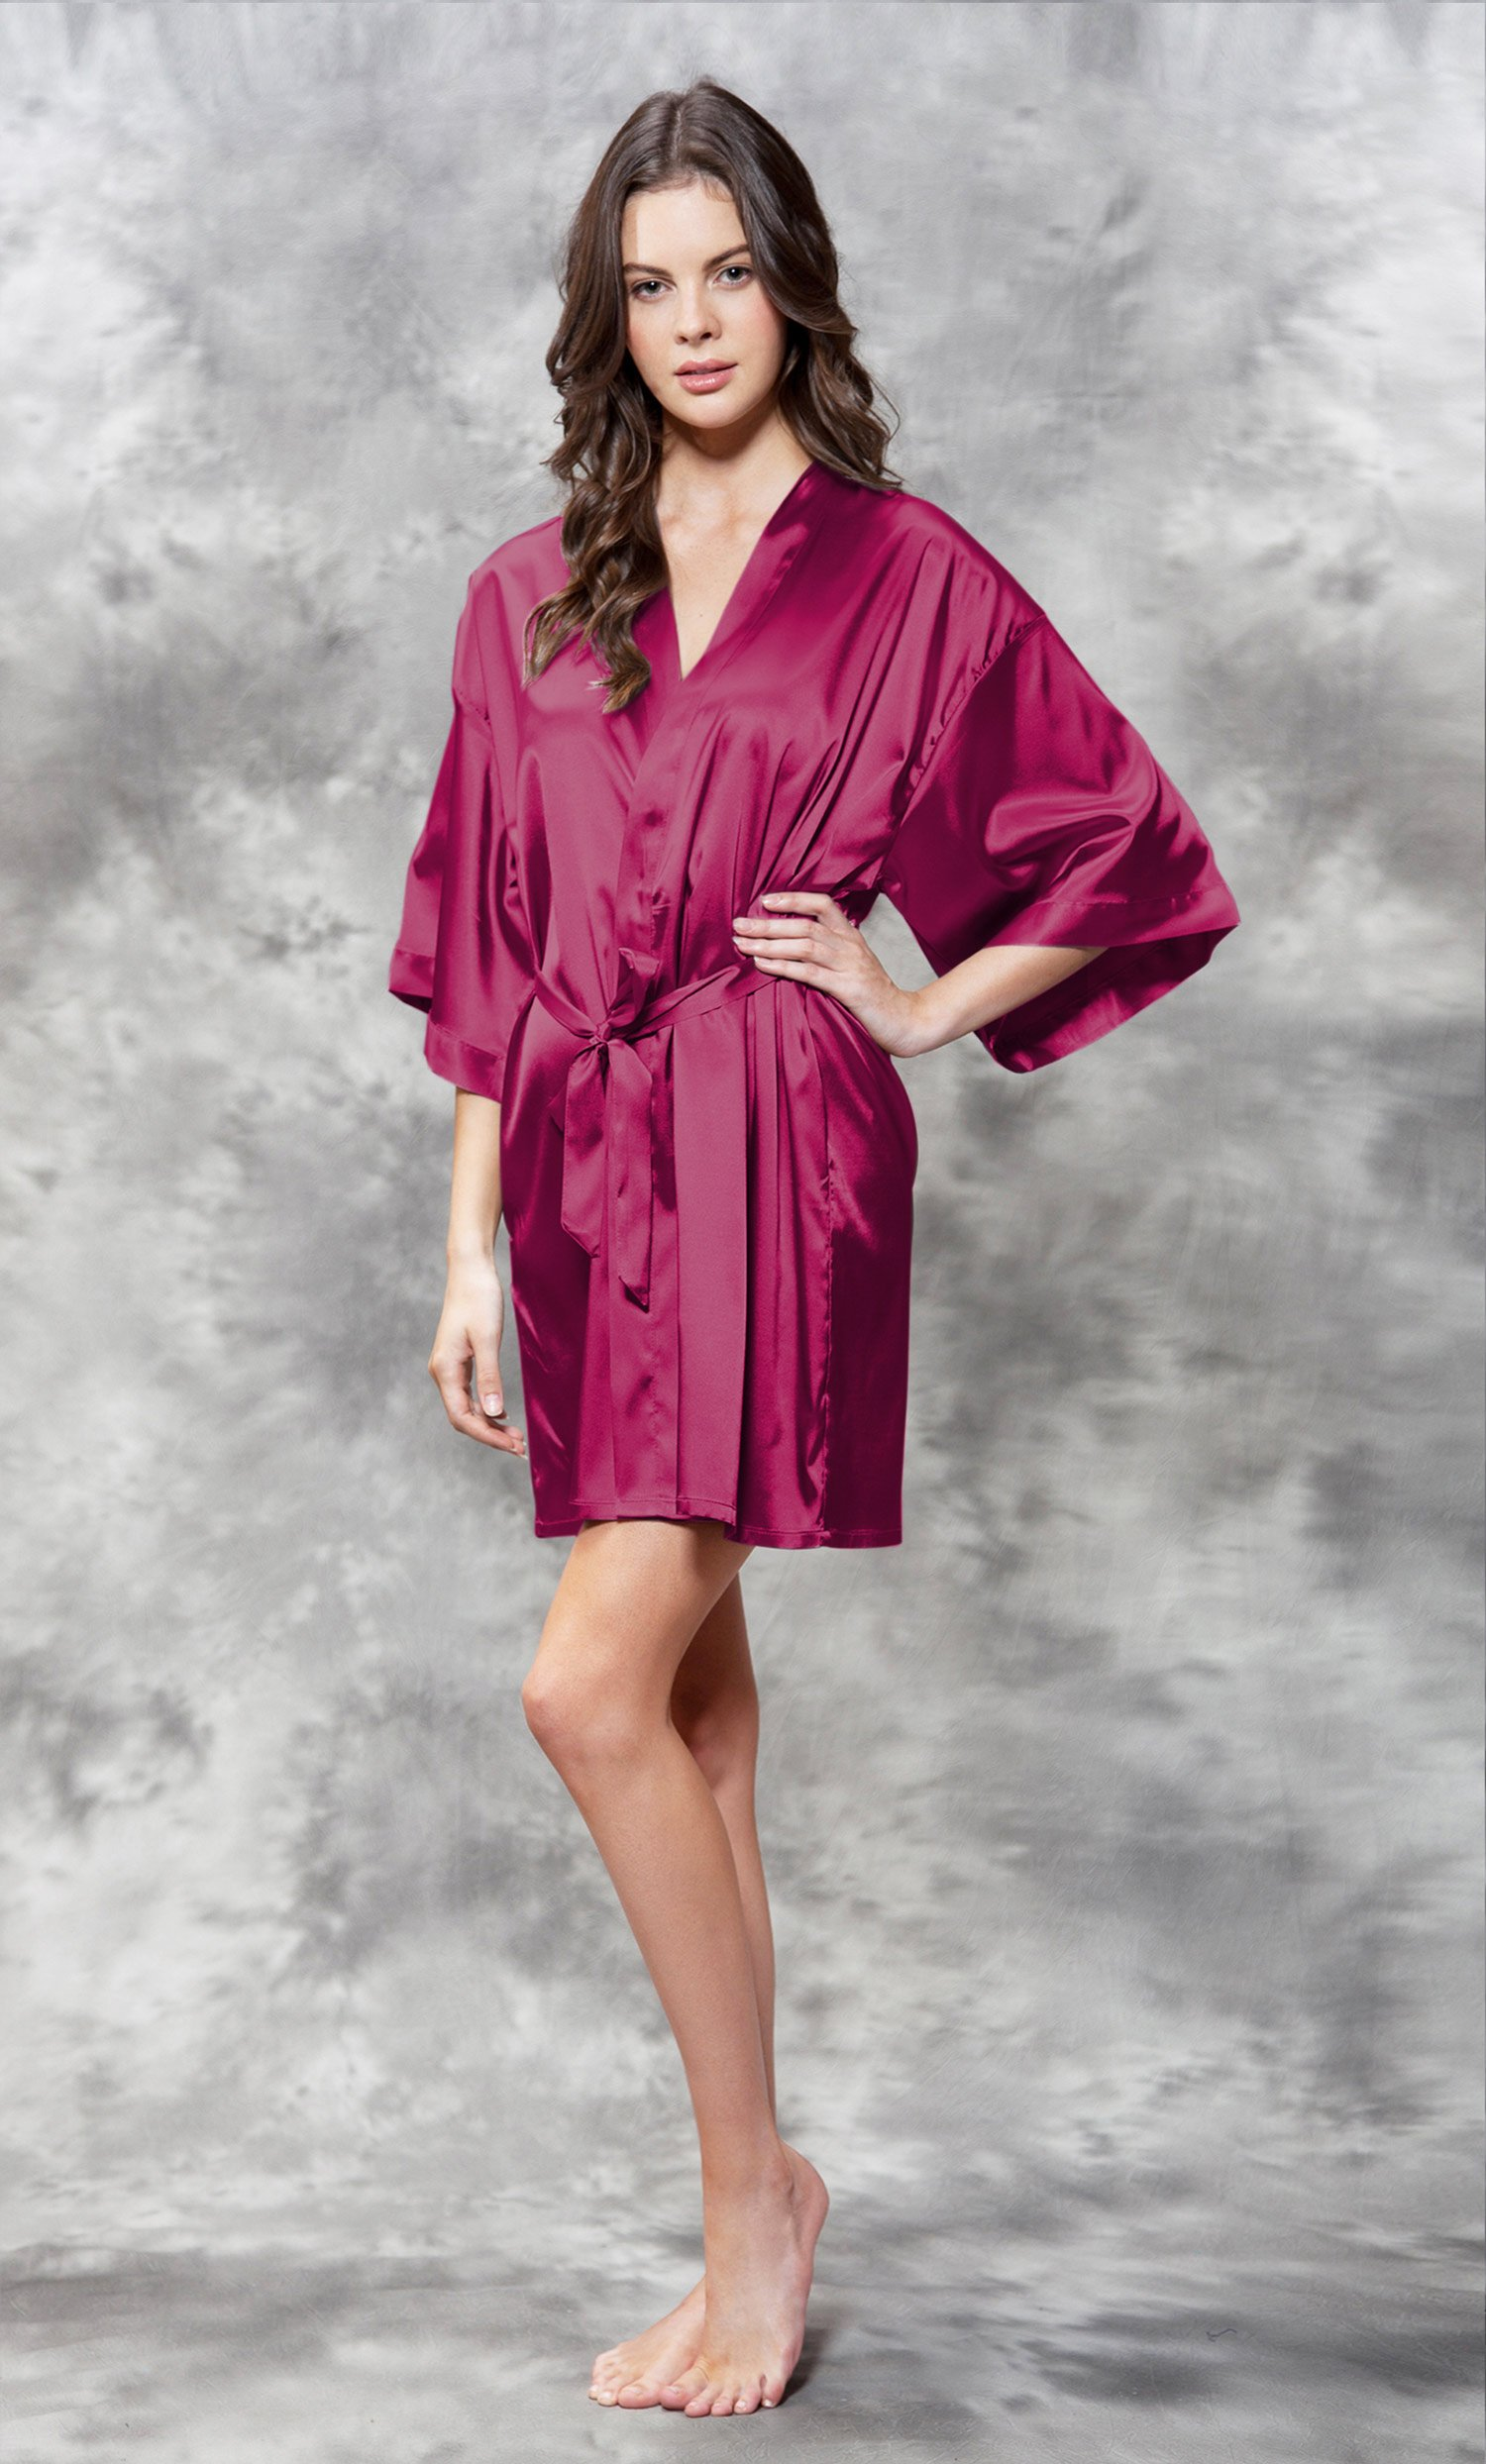 e971b8eb6d ... Bridesmaid Clear Rhinestone Satin Kimono Wine Red Short Robe -Robemart.com